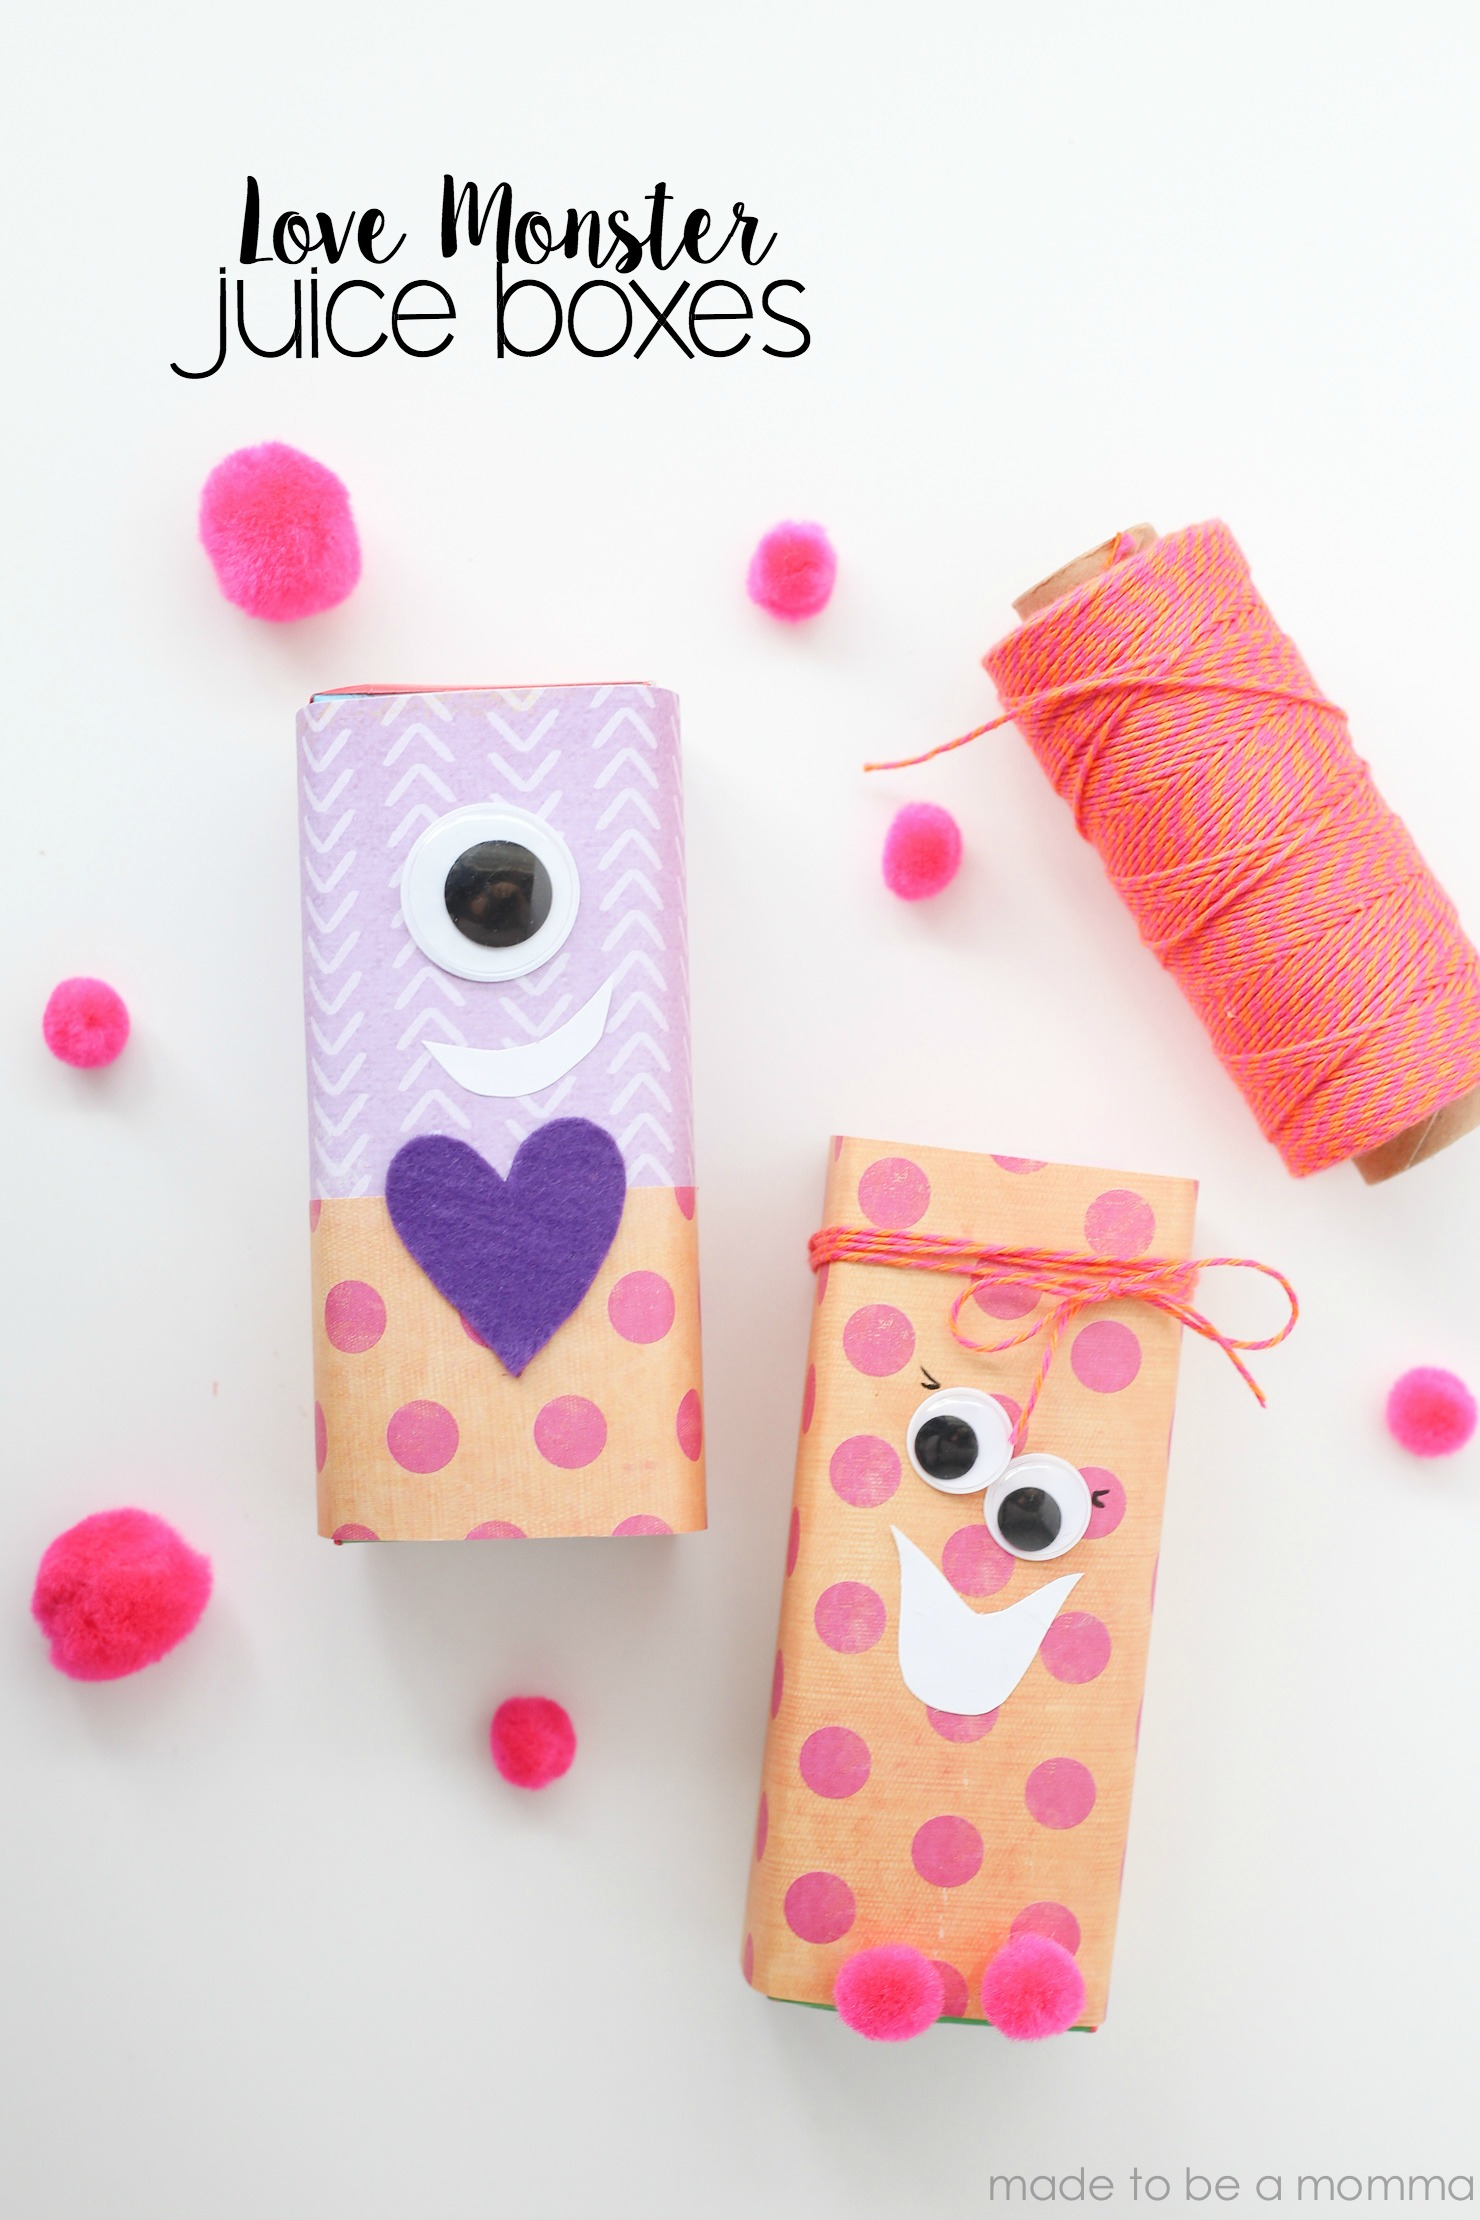 Love Monster Juice Boxes are a fun valentine activity for the kids to do at home or at school.